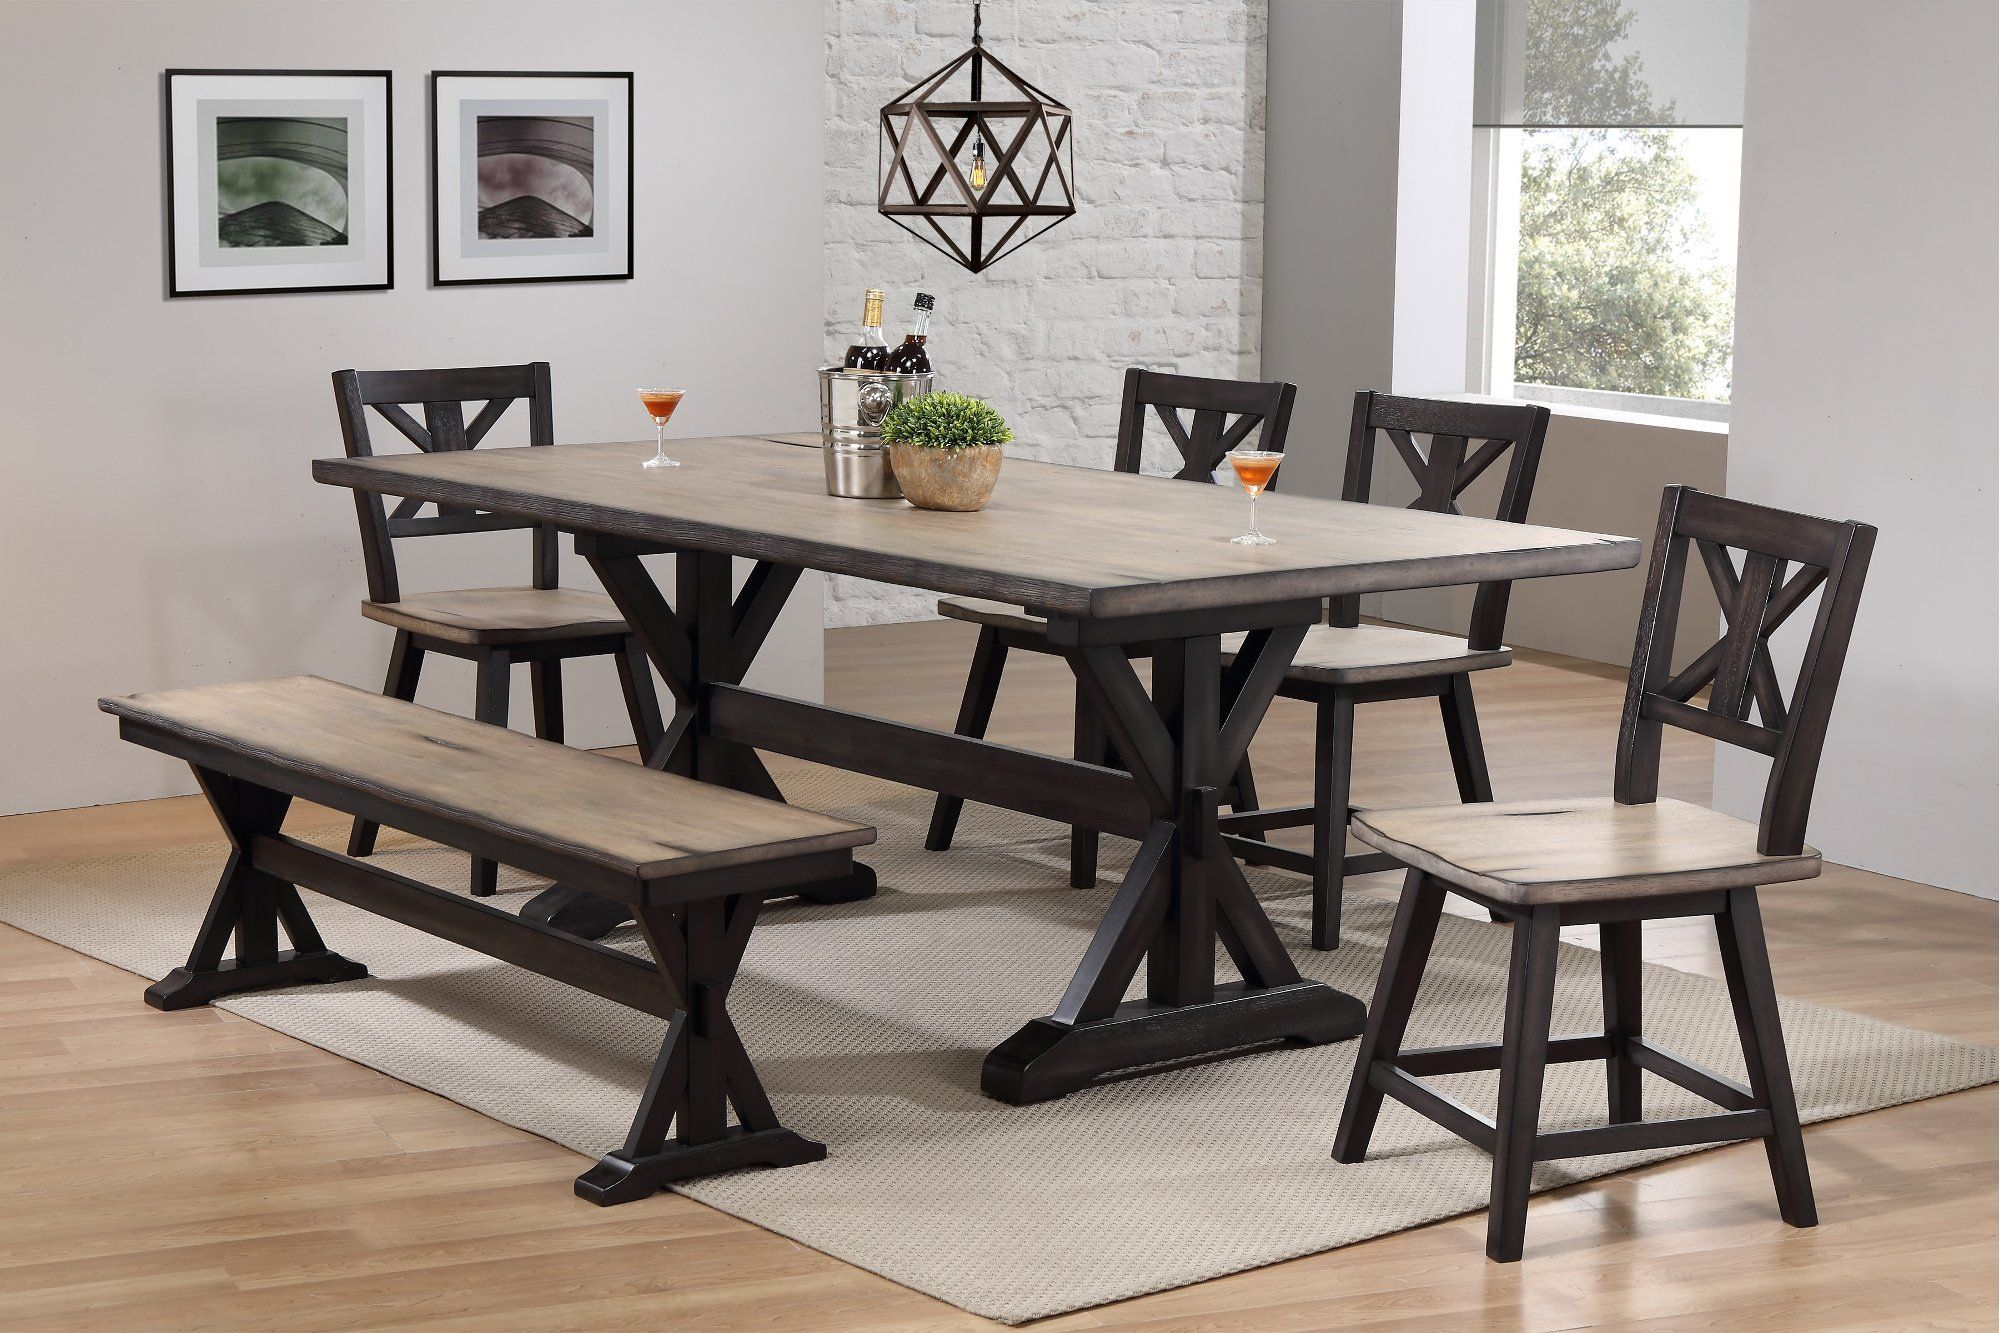 Farmhouse Sand And Black 6 Piece Dining Set With Bench Orlando Dining Set With Bench Farmhouse Table With Bench Farmhouse Dining Set